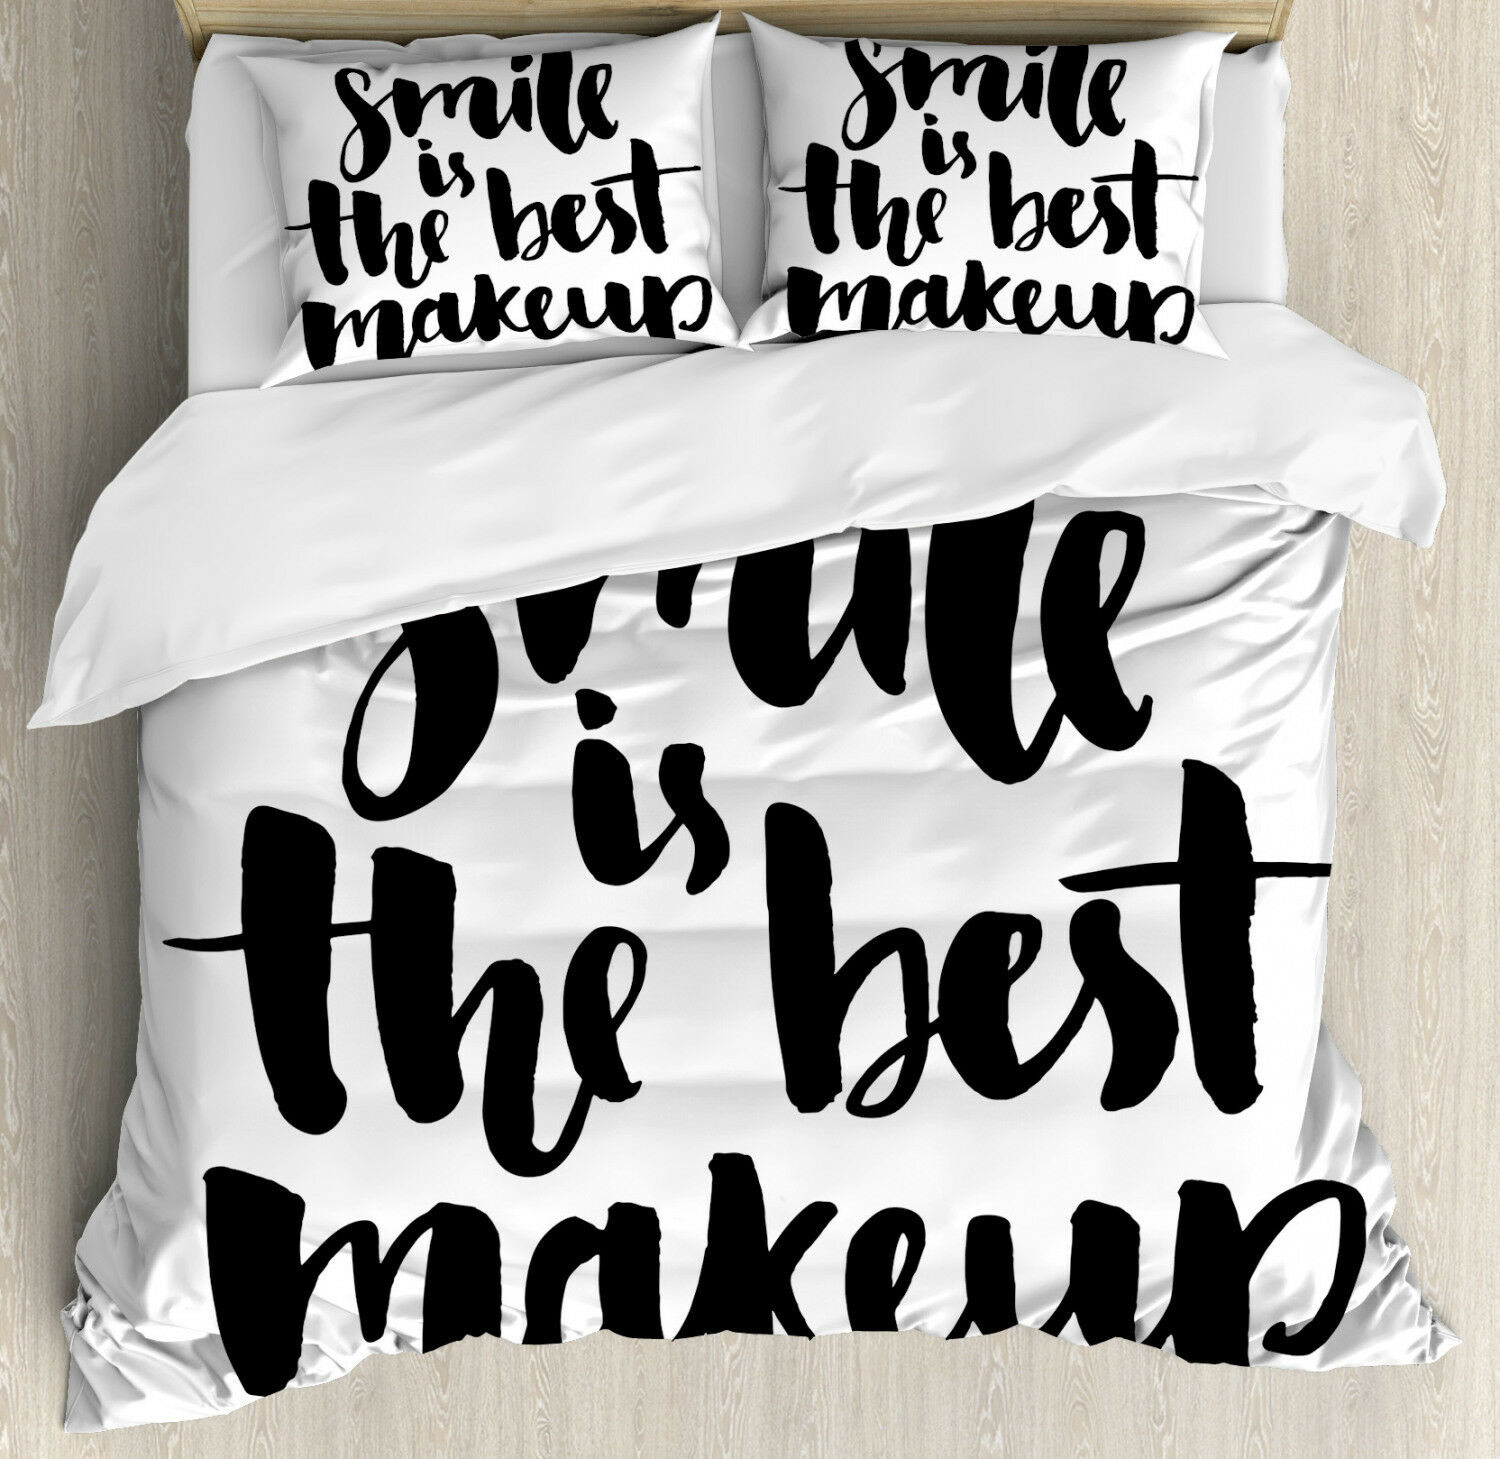 Quote Duvet Cover Set with Pillow Shams Smile Motivational Letter Print